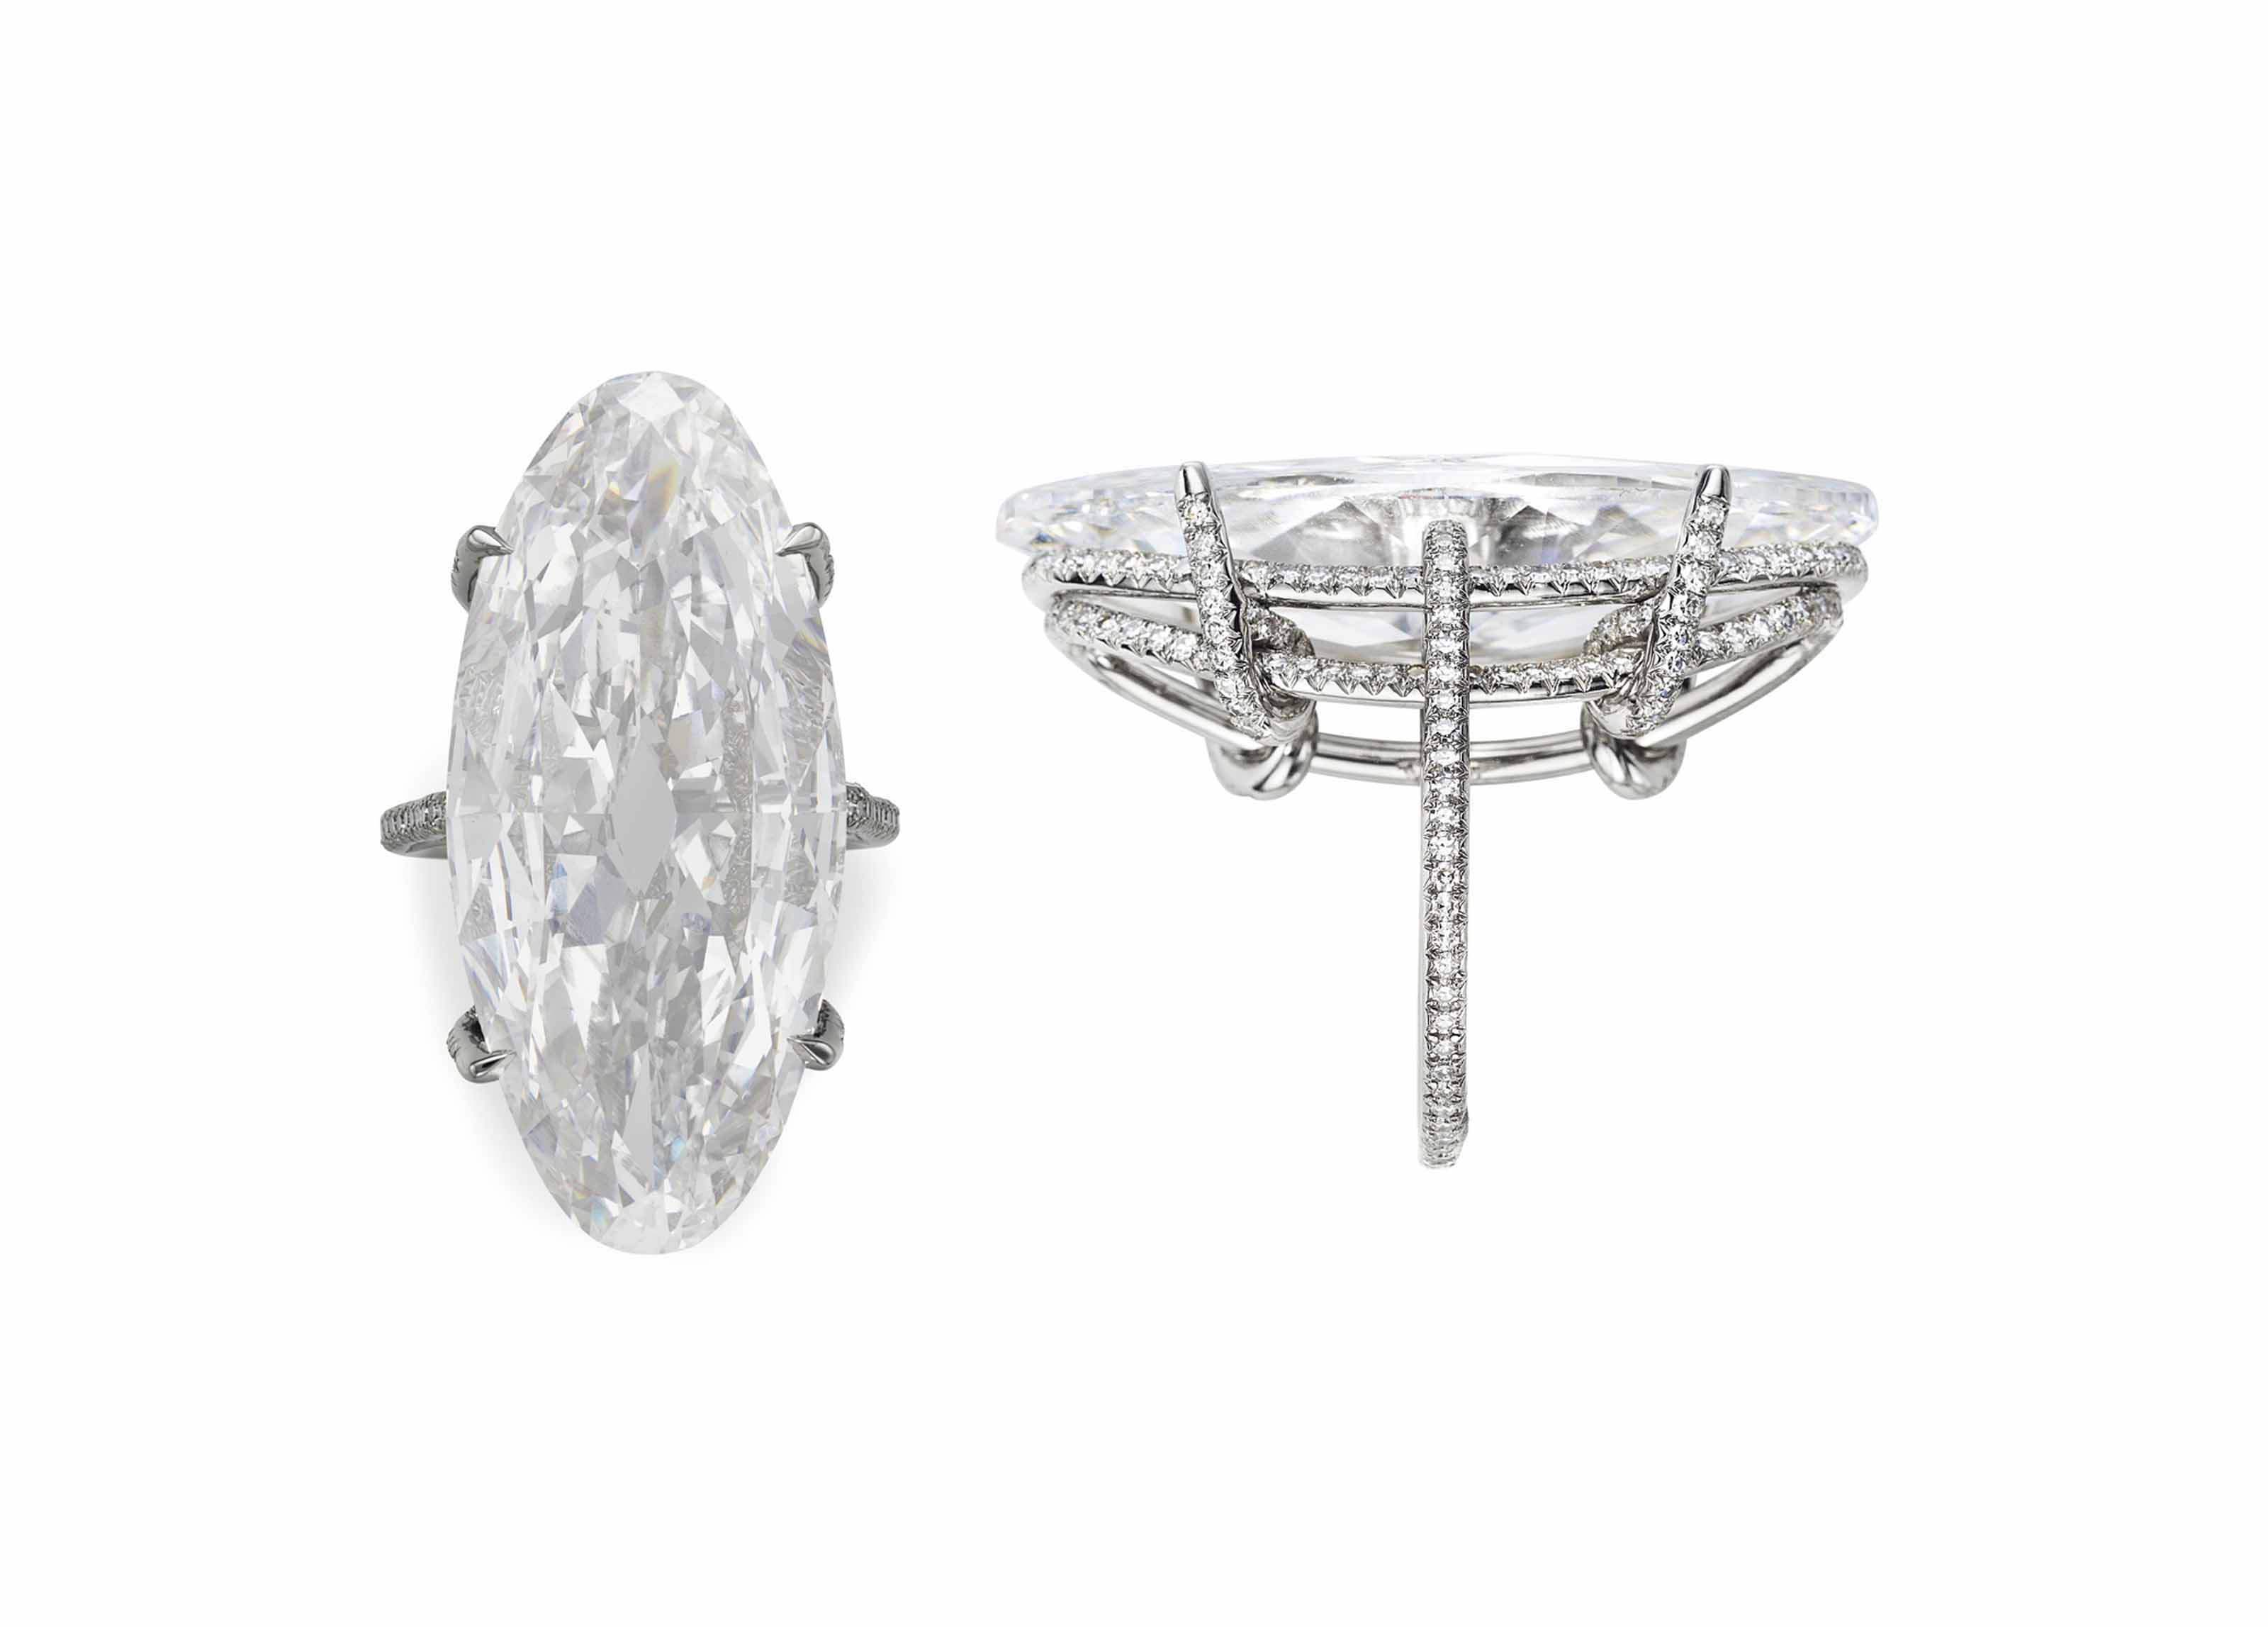 A MAGNIFICENT DIAMOND 'THREAD' RING, BY JAR